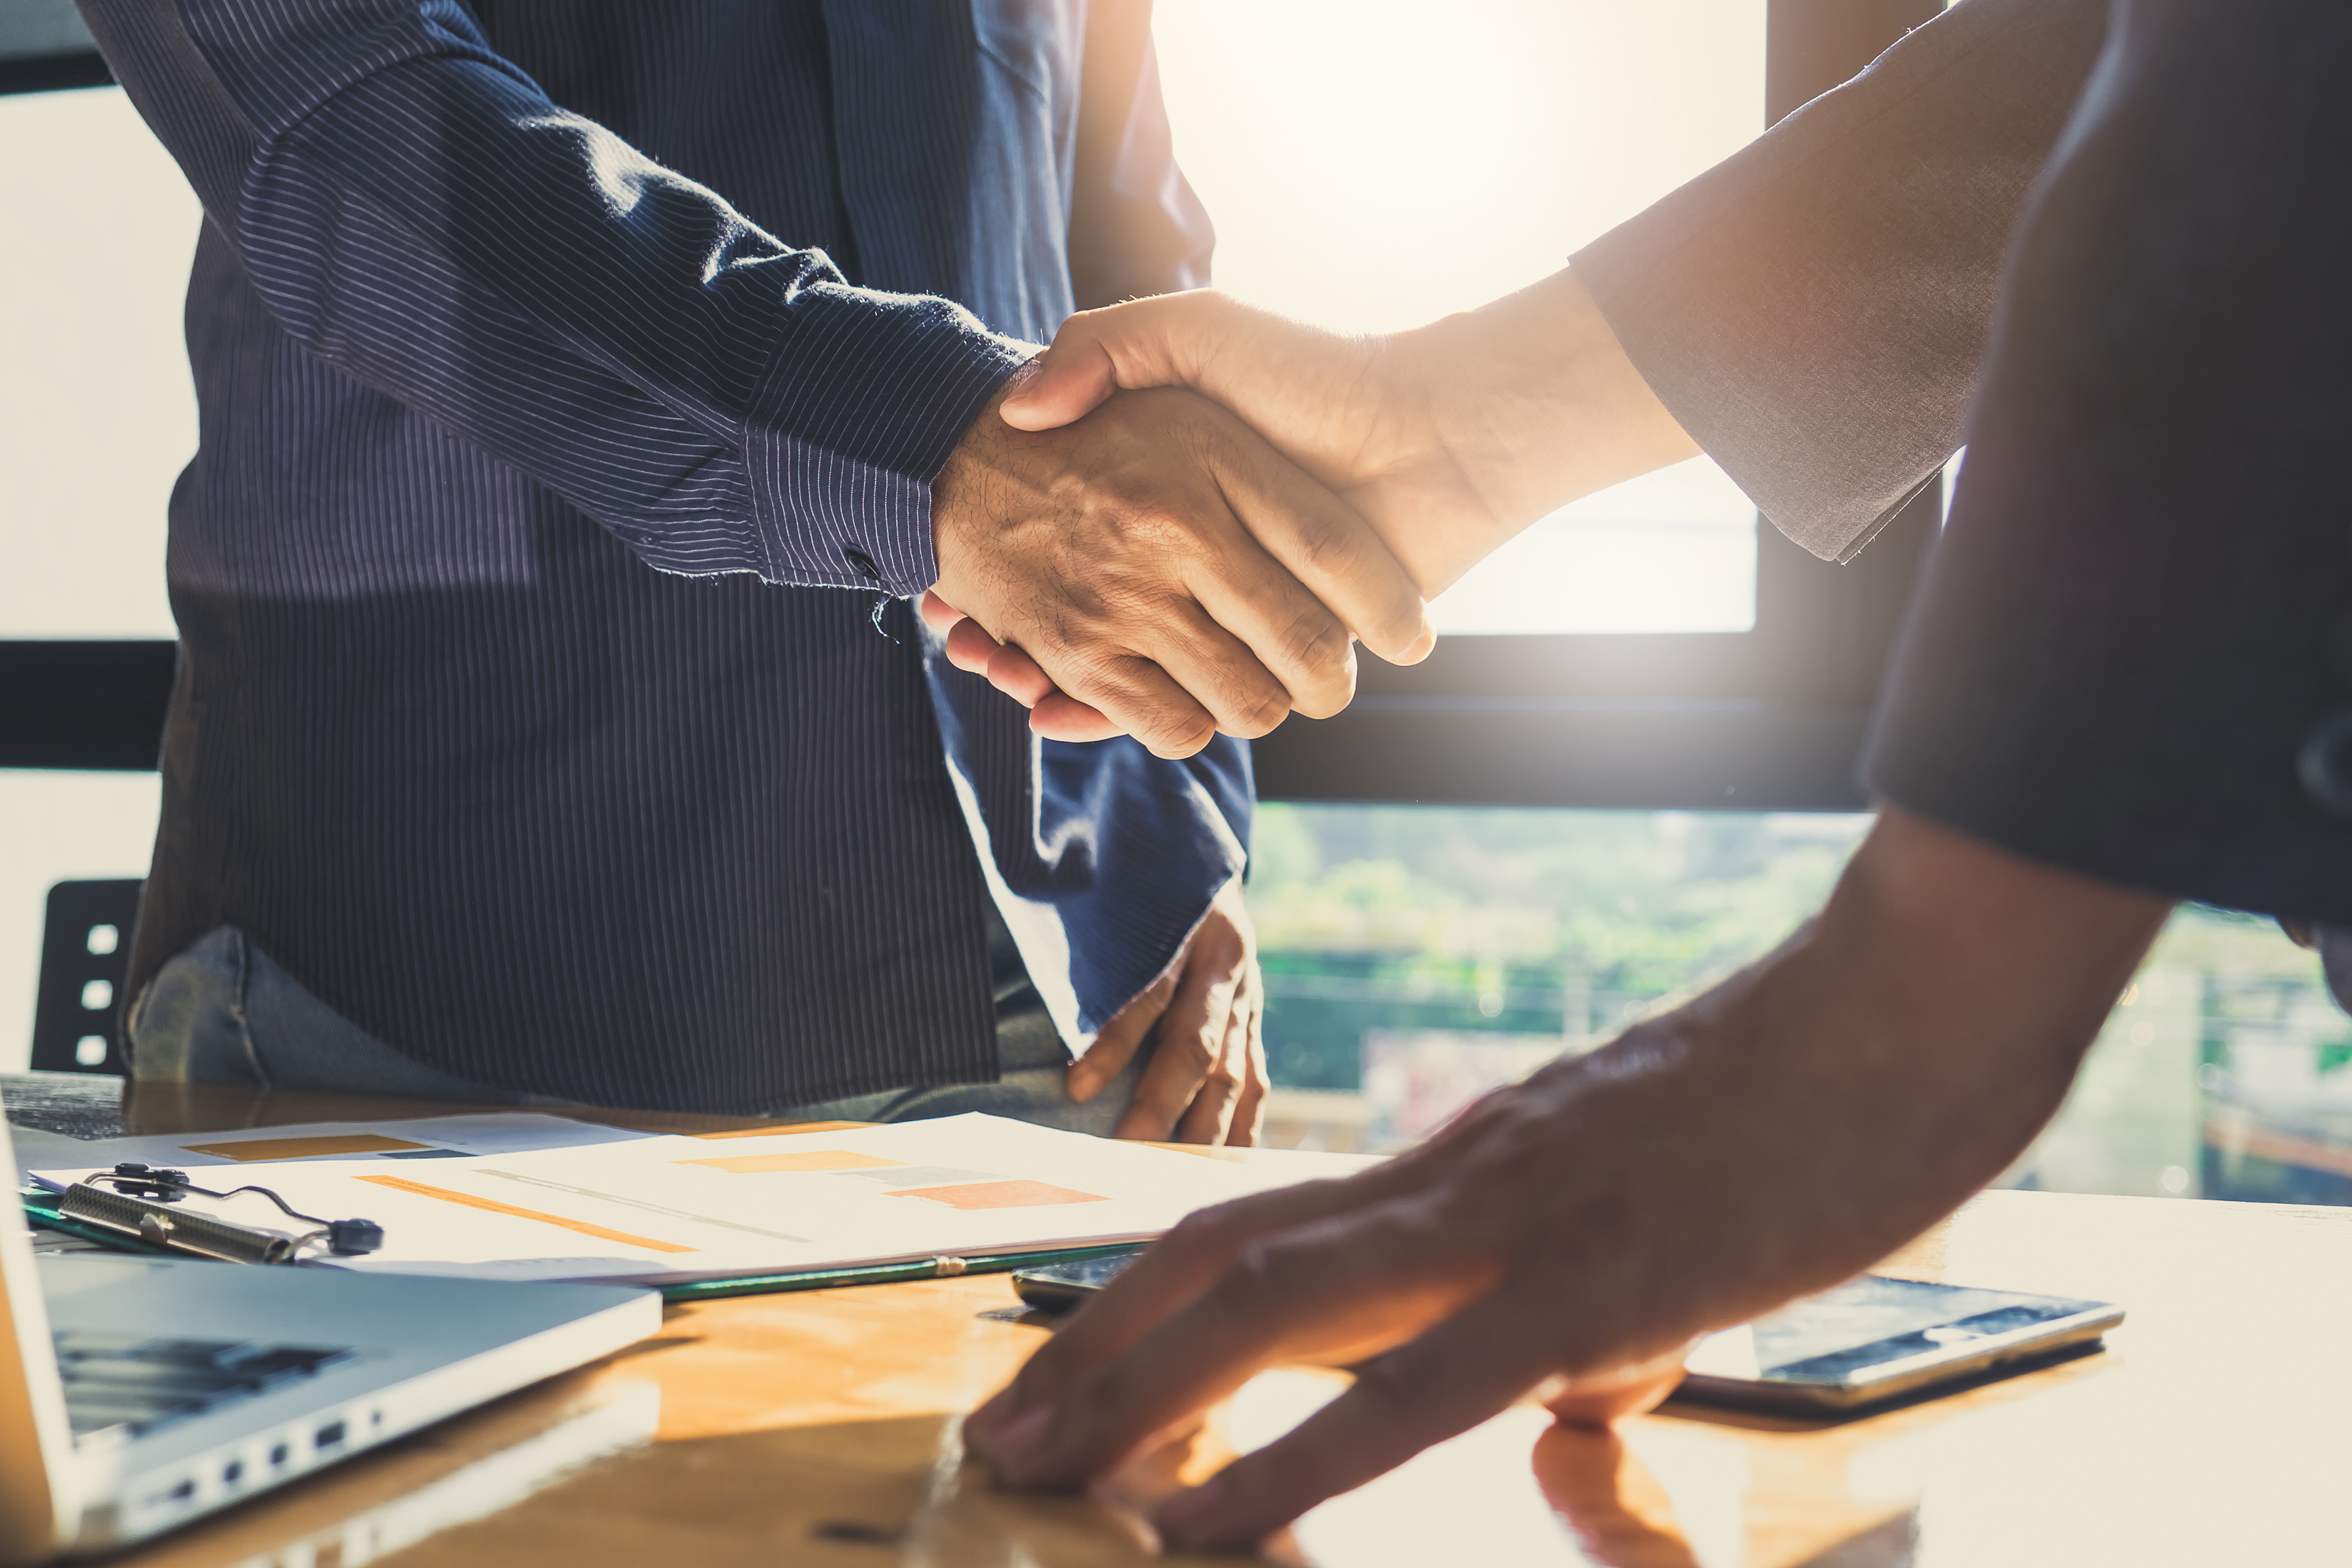 OUR PARTNERSHIPS HELP YOU GET EVERYTHING YOU NEED UNDER ONE CONTRACT